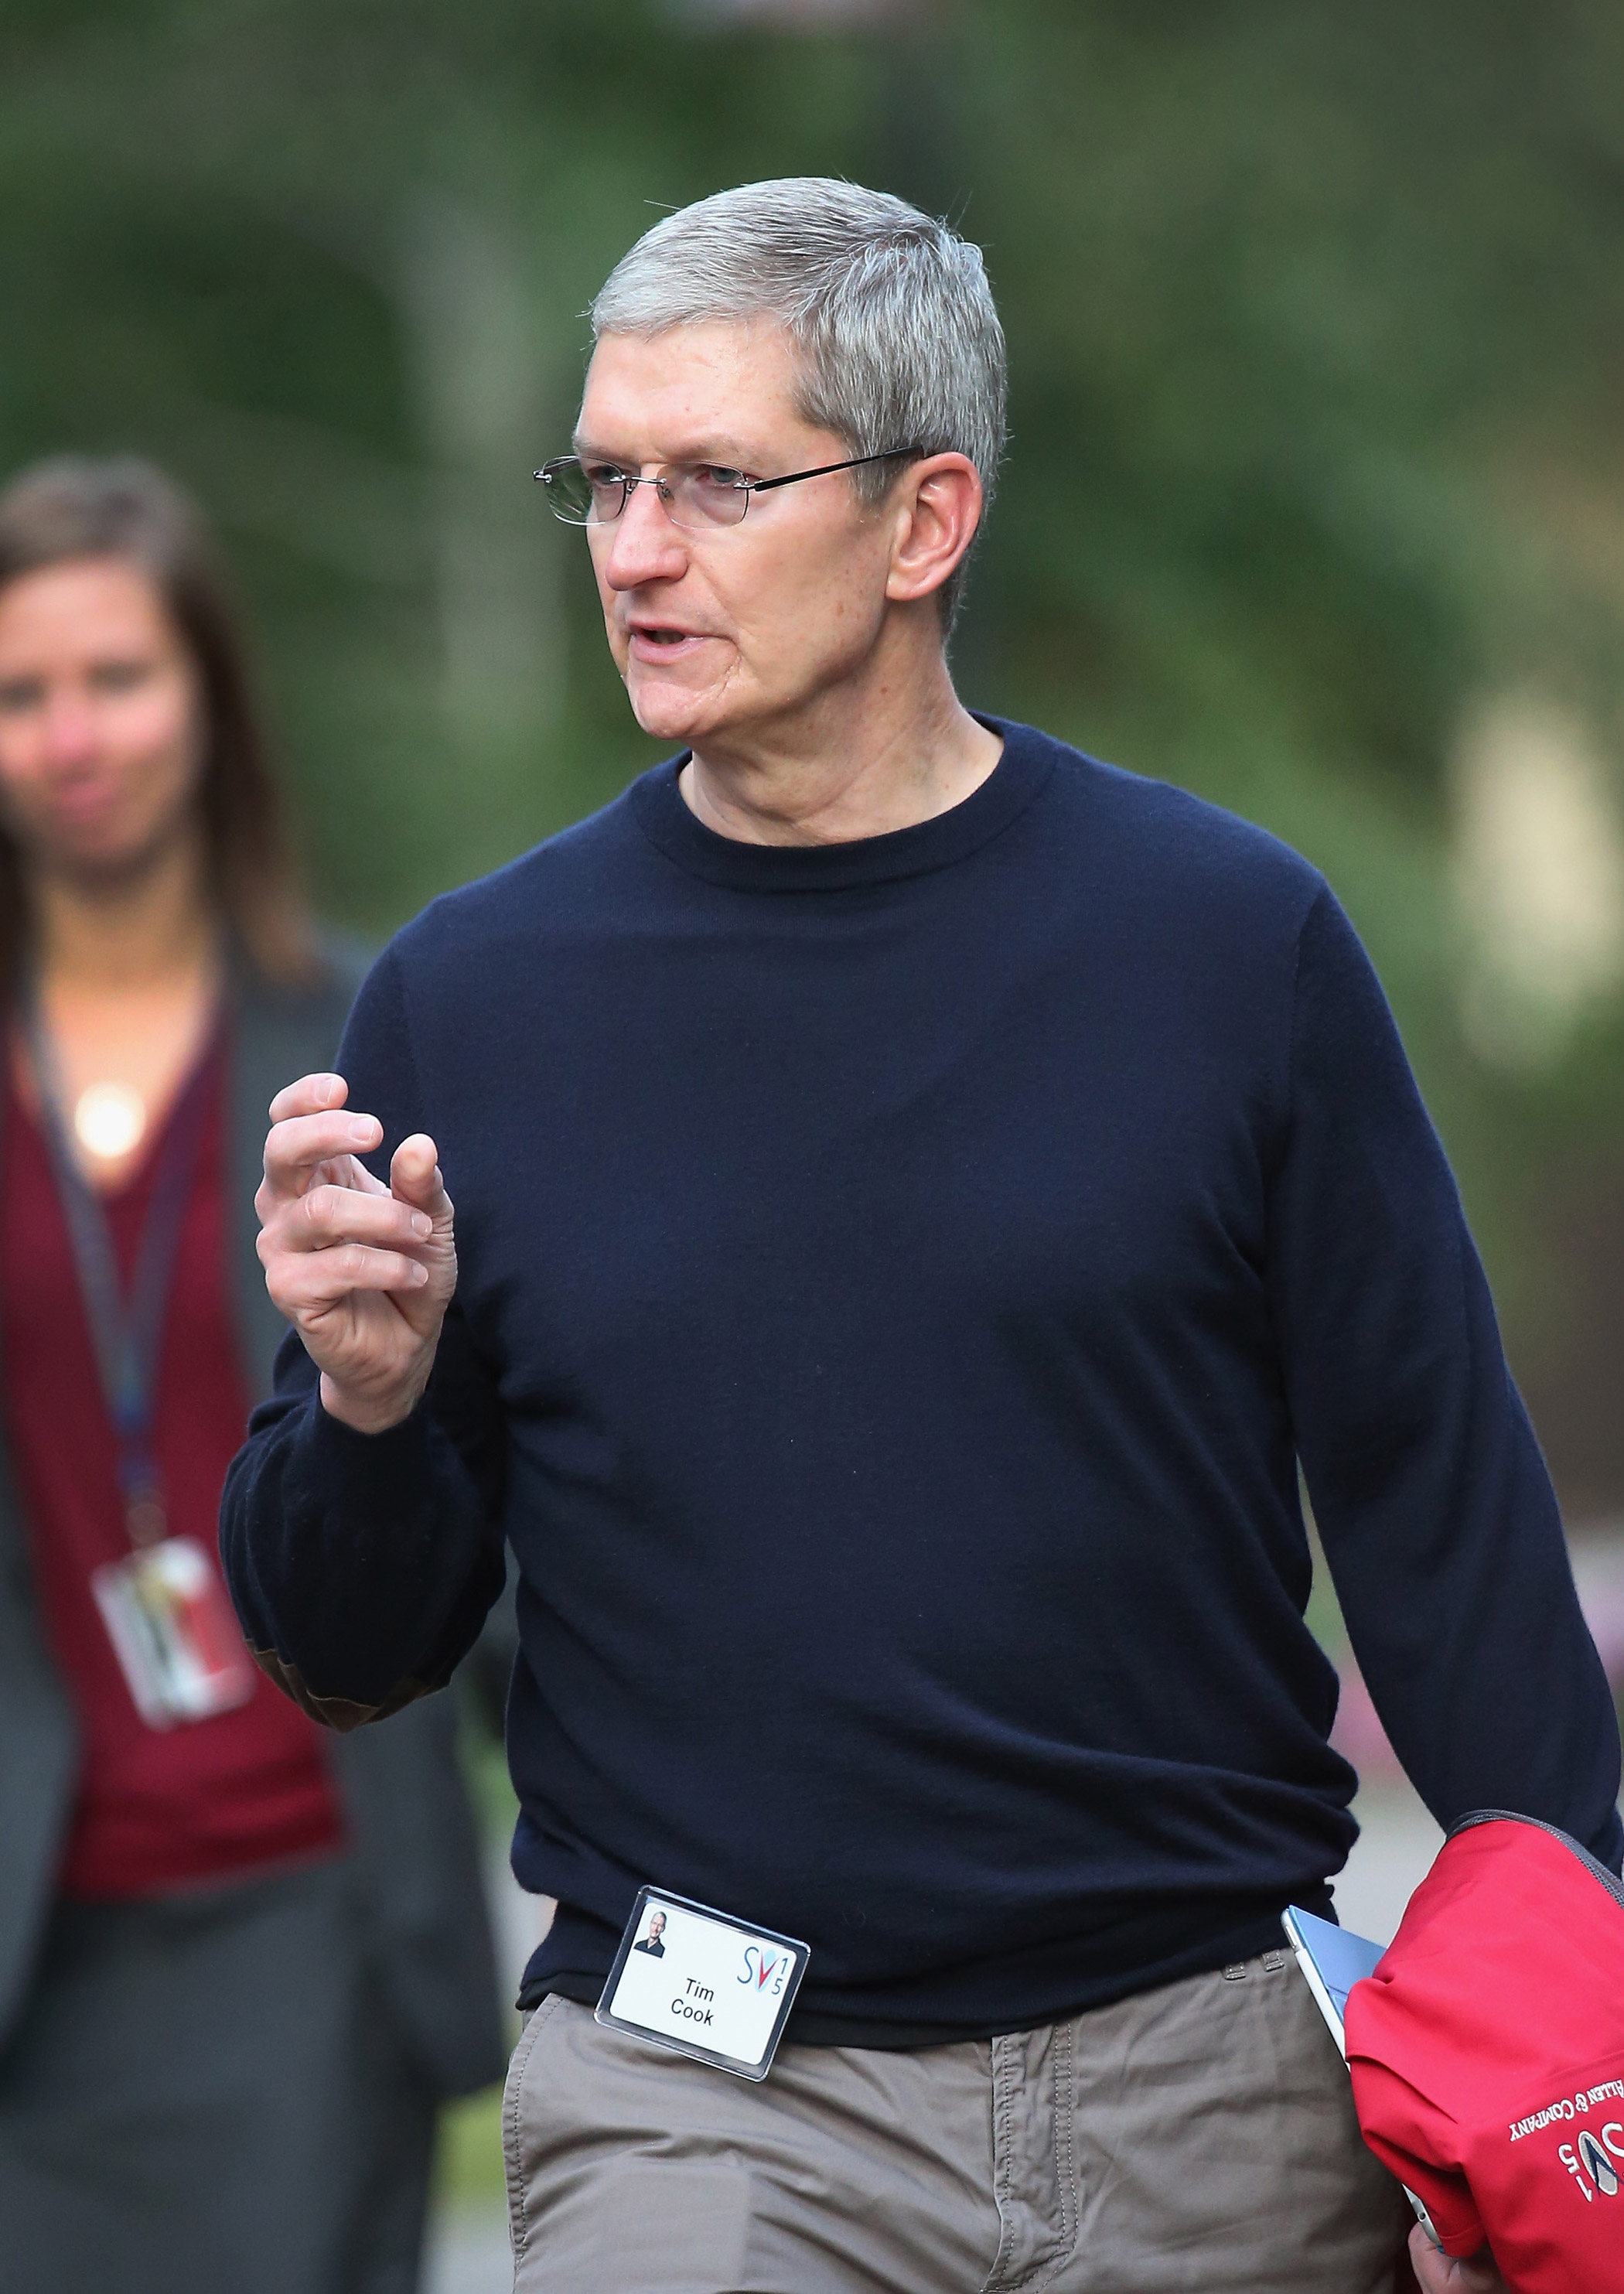 Tim Cook on July 9, 2015 in Sun Valley, Idaho.